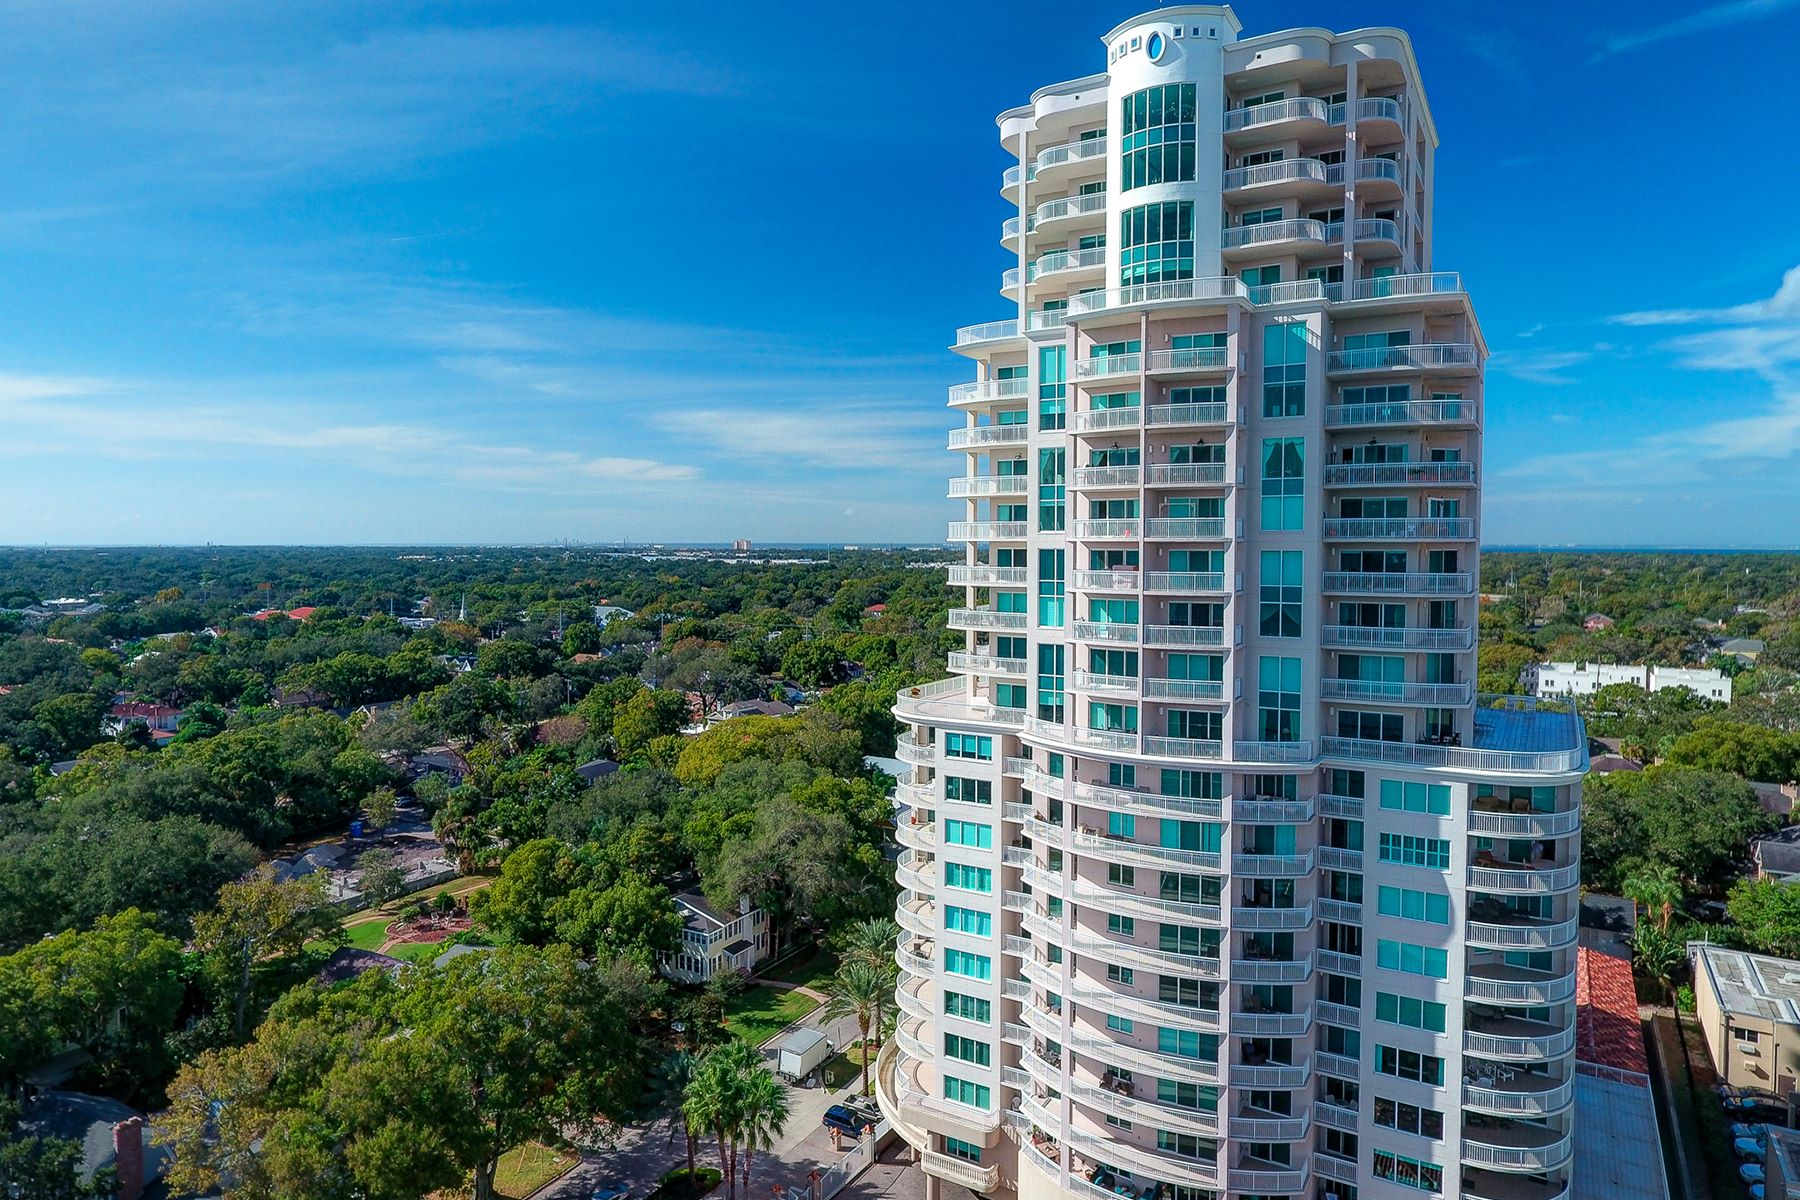 Condominium for Sale at SOUTH TAMPA 3507 Bayshore Blvd 1601 Tampa, Florida, 33629 United States